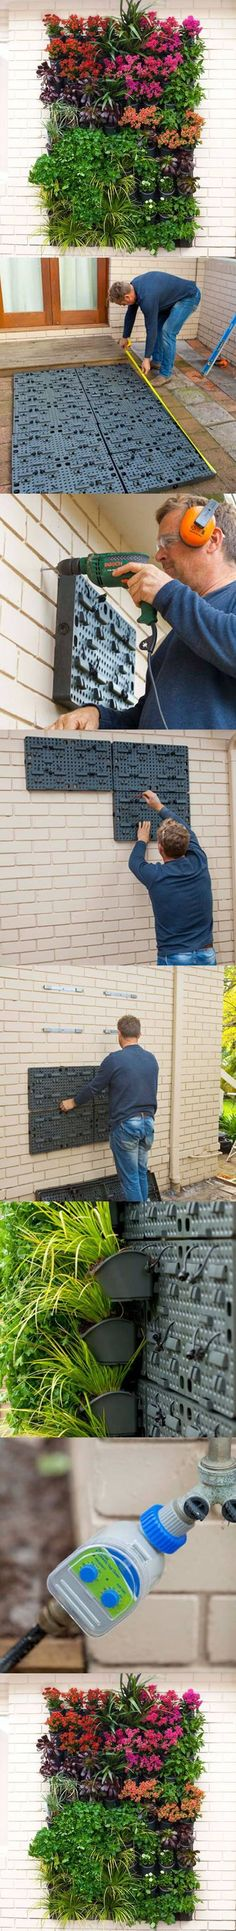 DIY How to Make Vertical Garden DIY How to Make Vertical Garden